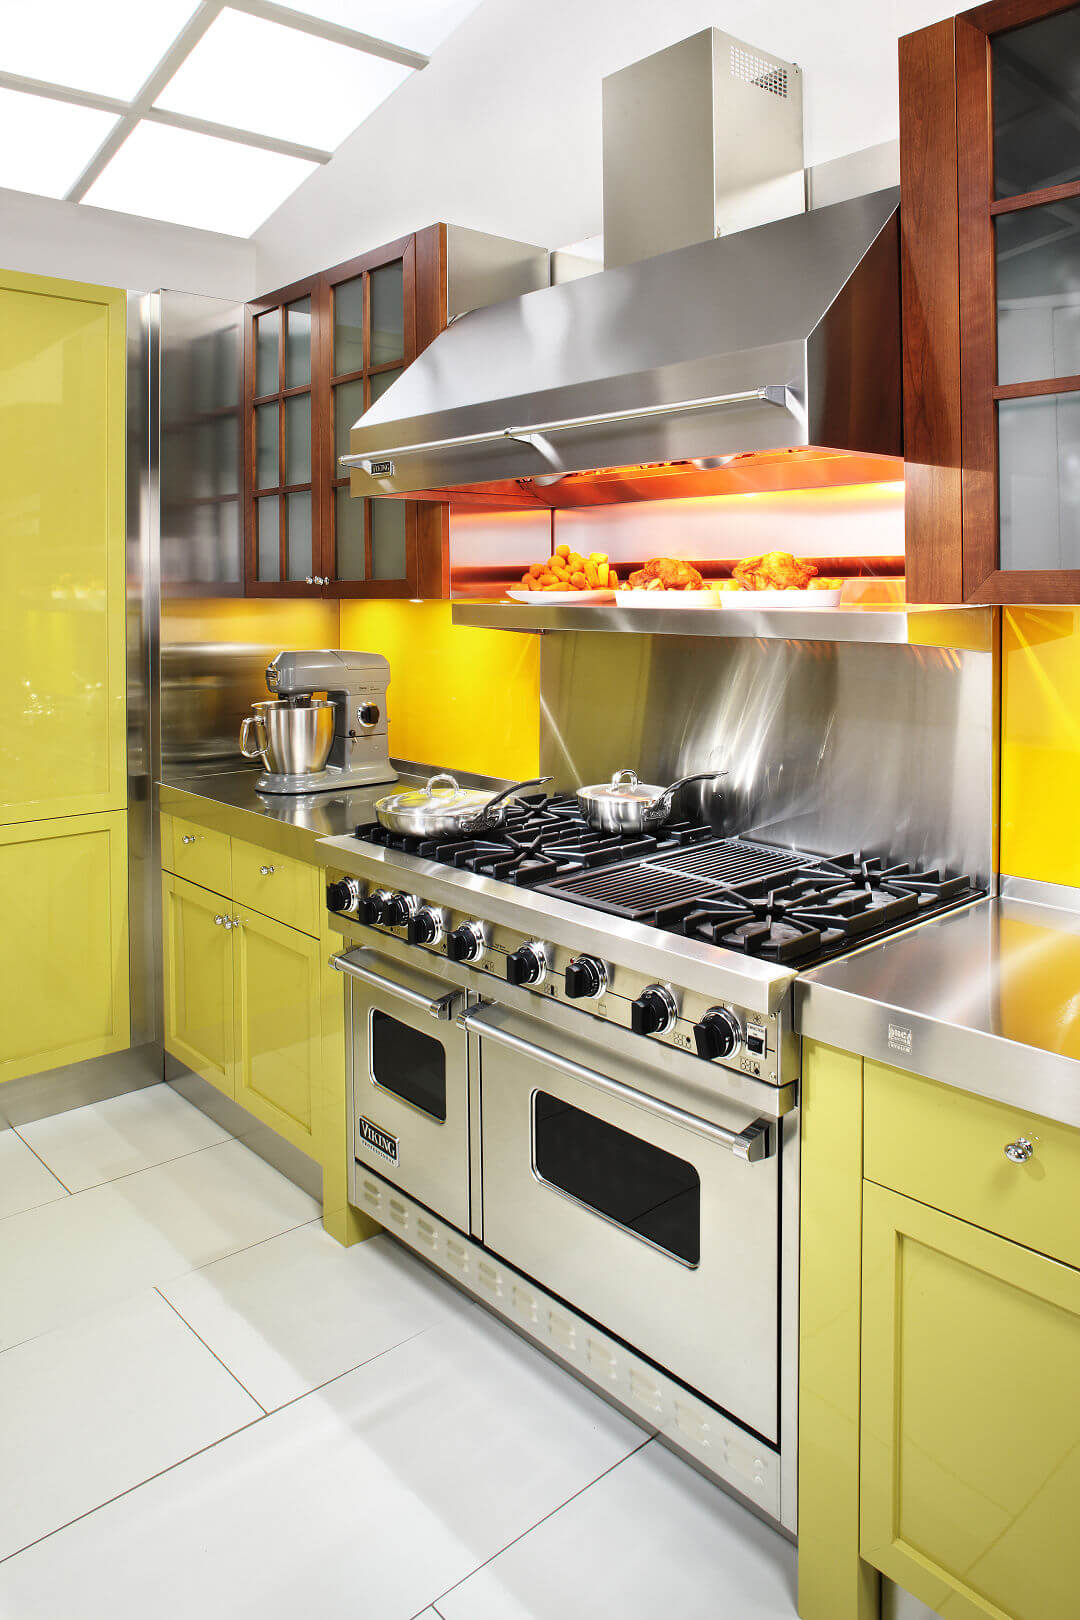 Arca Cucine Italy - Domestic stainless steel kitchens - 14 - Cambridge - block Cooking